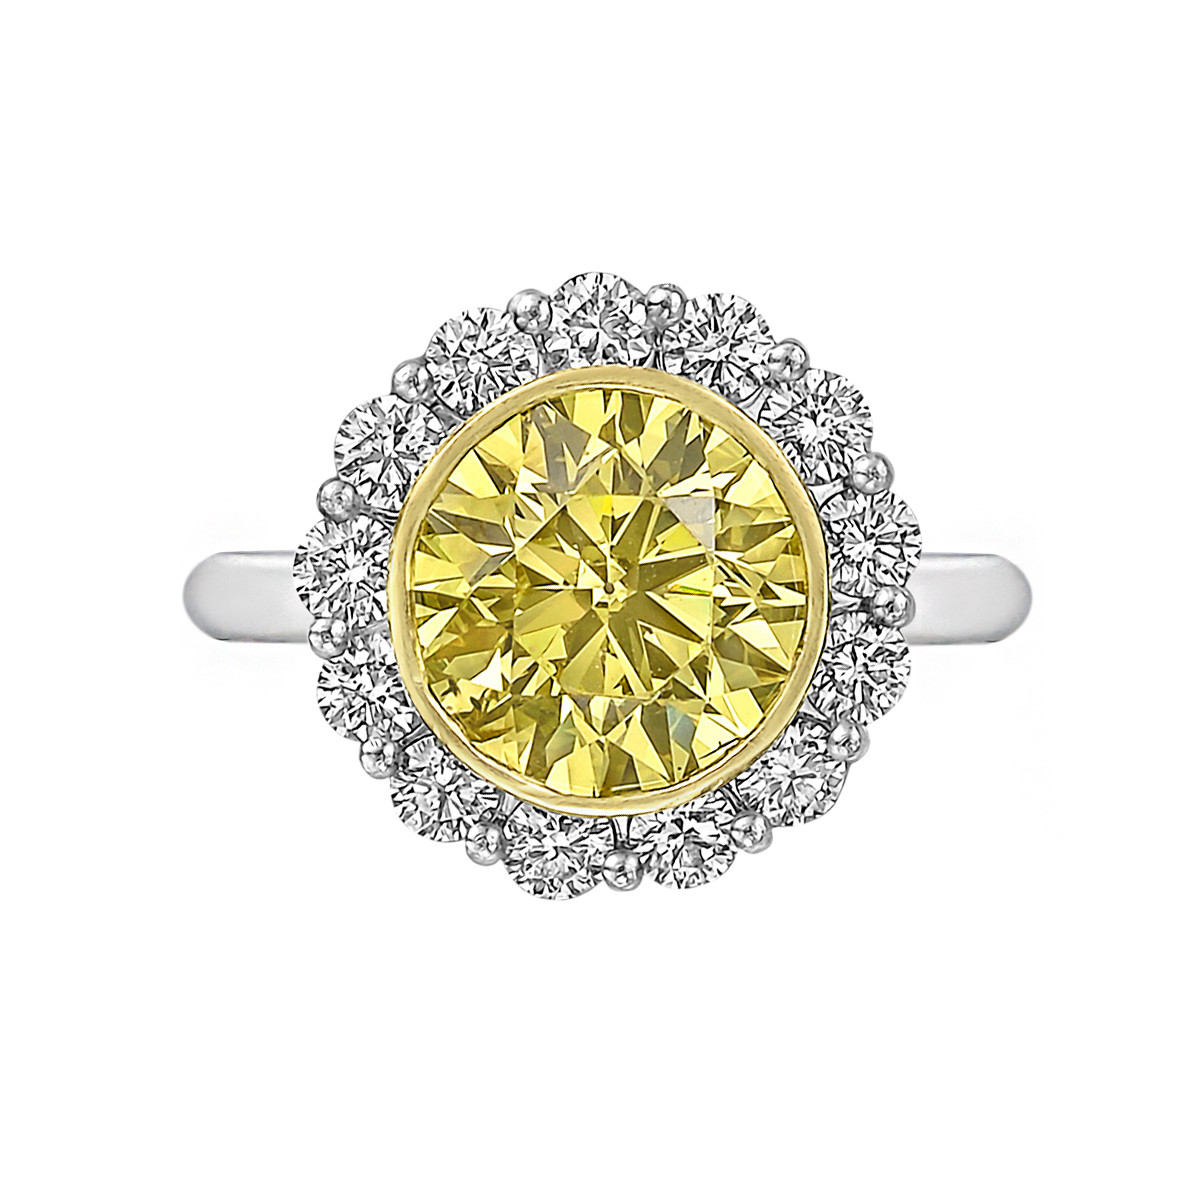 3.52ct Fancy Intense Yellow & White Diamond Ring